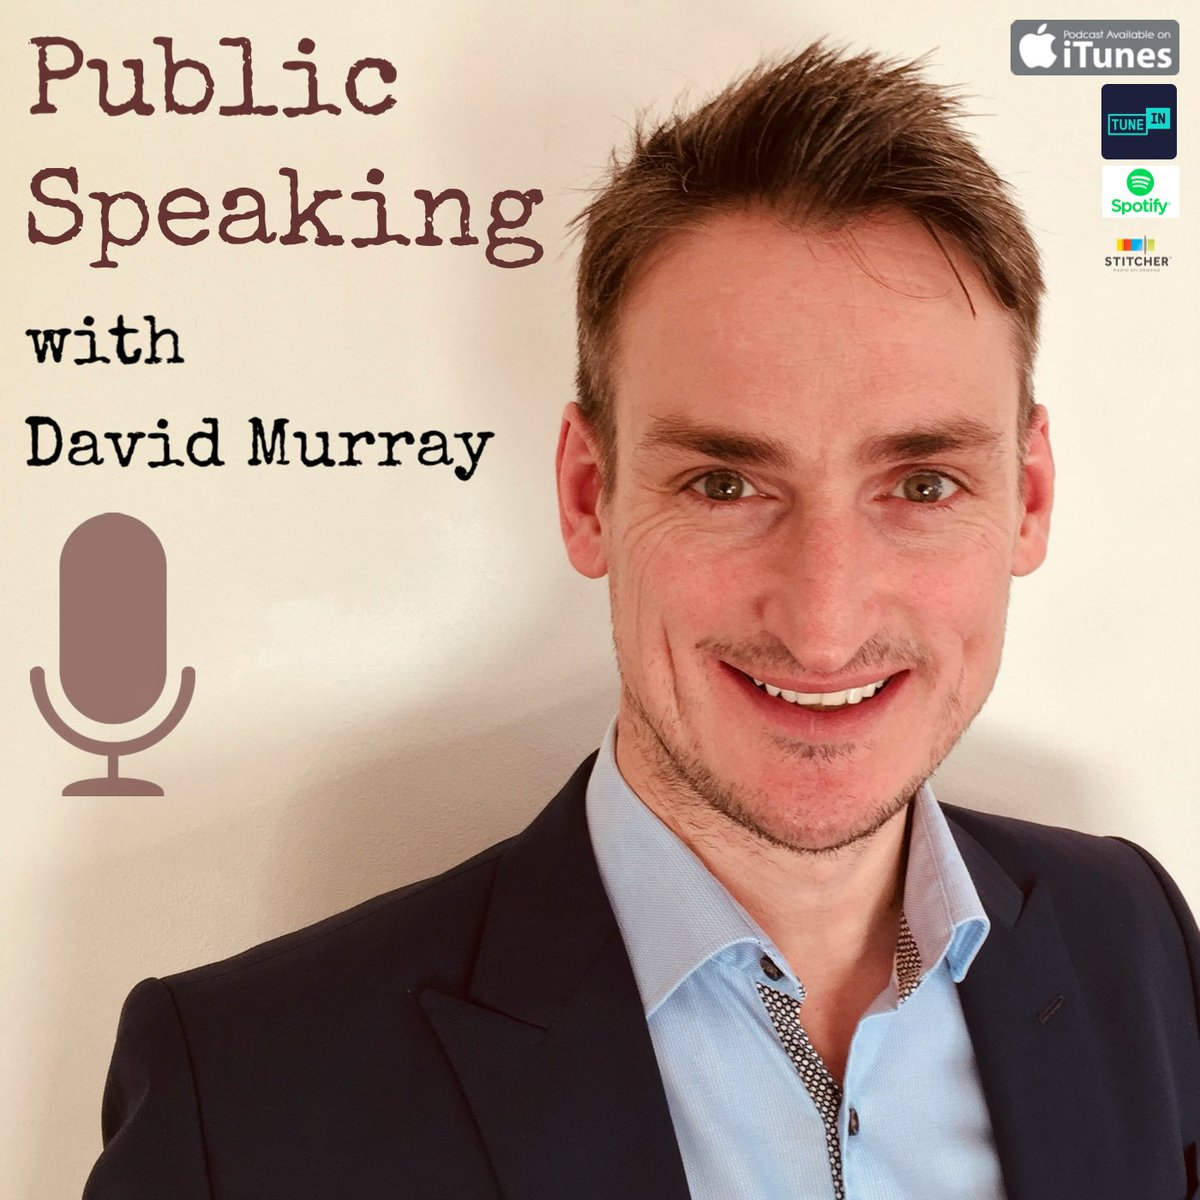 Delivering a speech or presentation this week? Share your message with confidence and flair by listening to the #Publicspeaking with David Murray podcast.  What to do if you forget what to say next! http://ow.ly/6Nym50yzjIv  #communicatewithconfidence #presentationskillspic.twitter.com/gfslT0cSHA